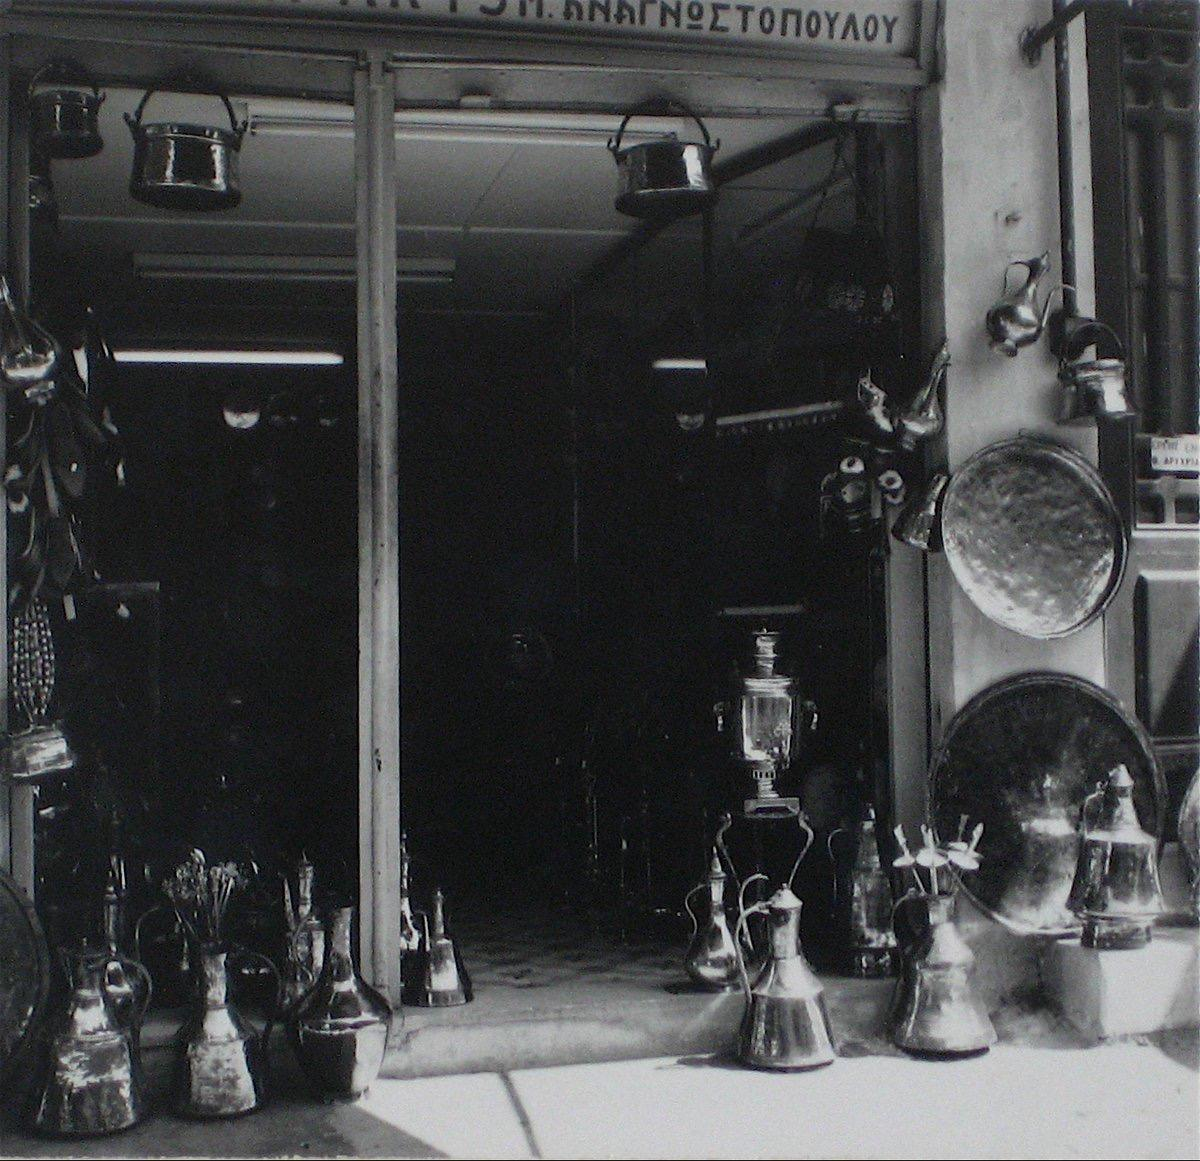 Greek Storefront 1960s Black and White Photograph